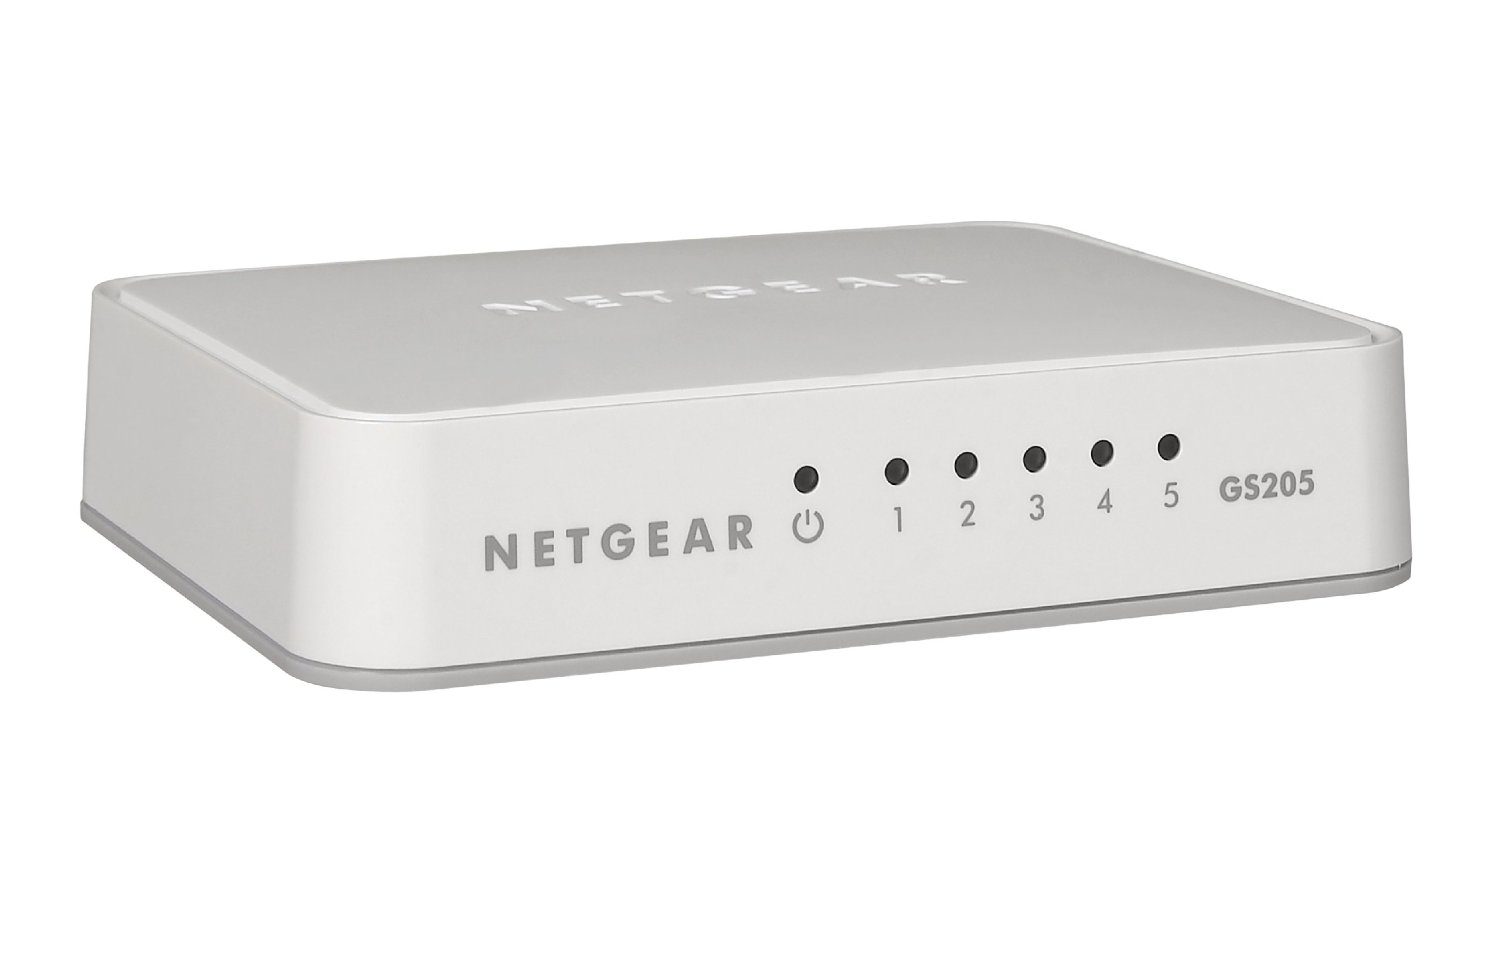 Gigabit Networking Switch